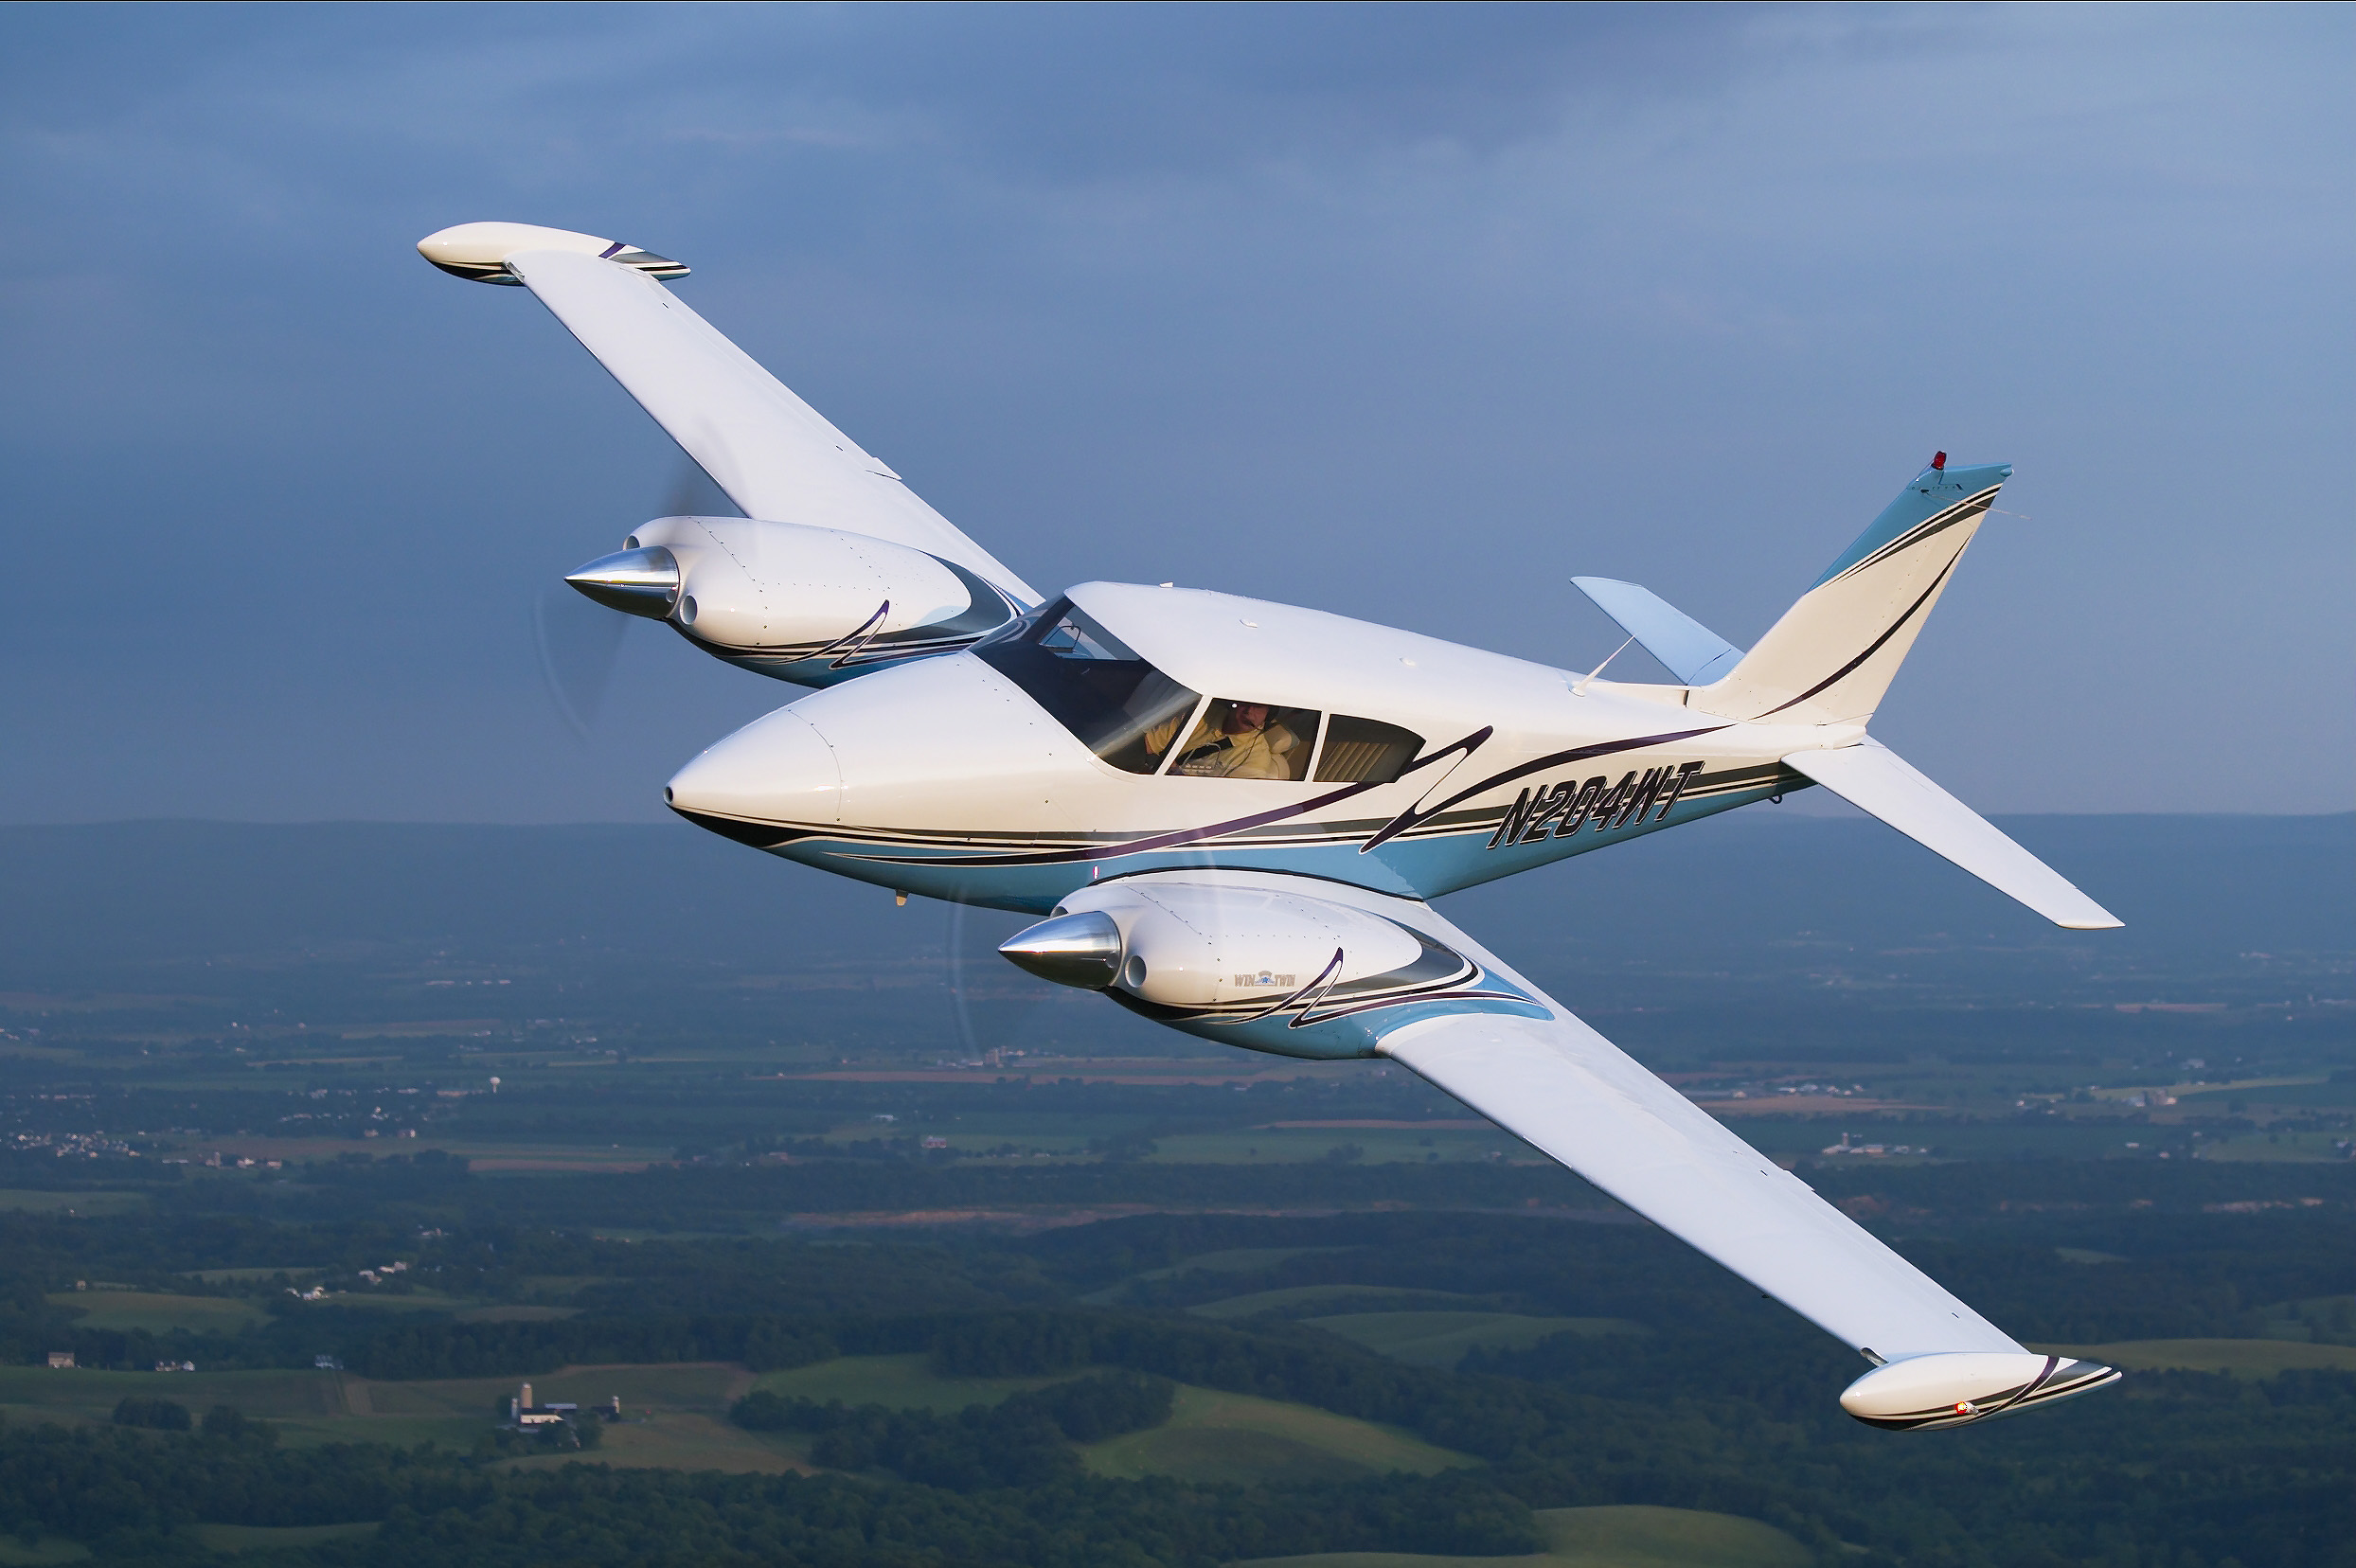 Pilots who follow the necessary steps can fly in aircraft weighing up to 6,000 lbs. gross takeoff weight, with up to six seats and carrying up to five passengers. They can fly day or night, VFR or IFR, at speeds up to 250 kts and at altitudes up to 18,000 feet msl.